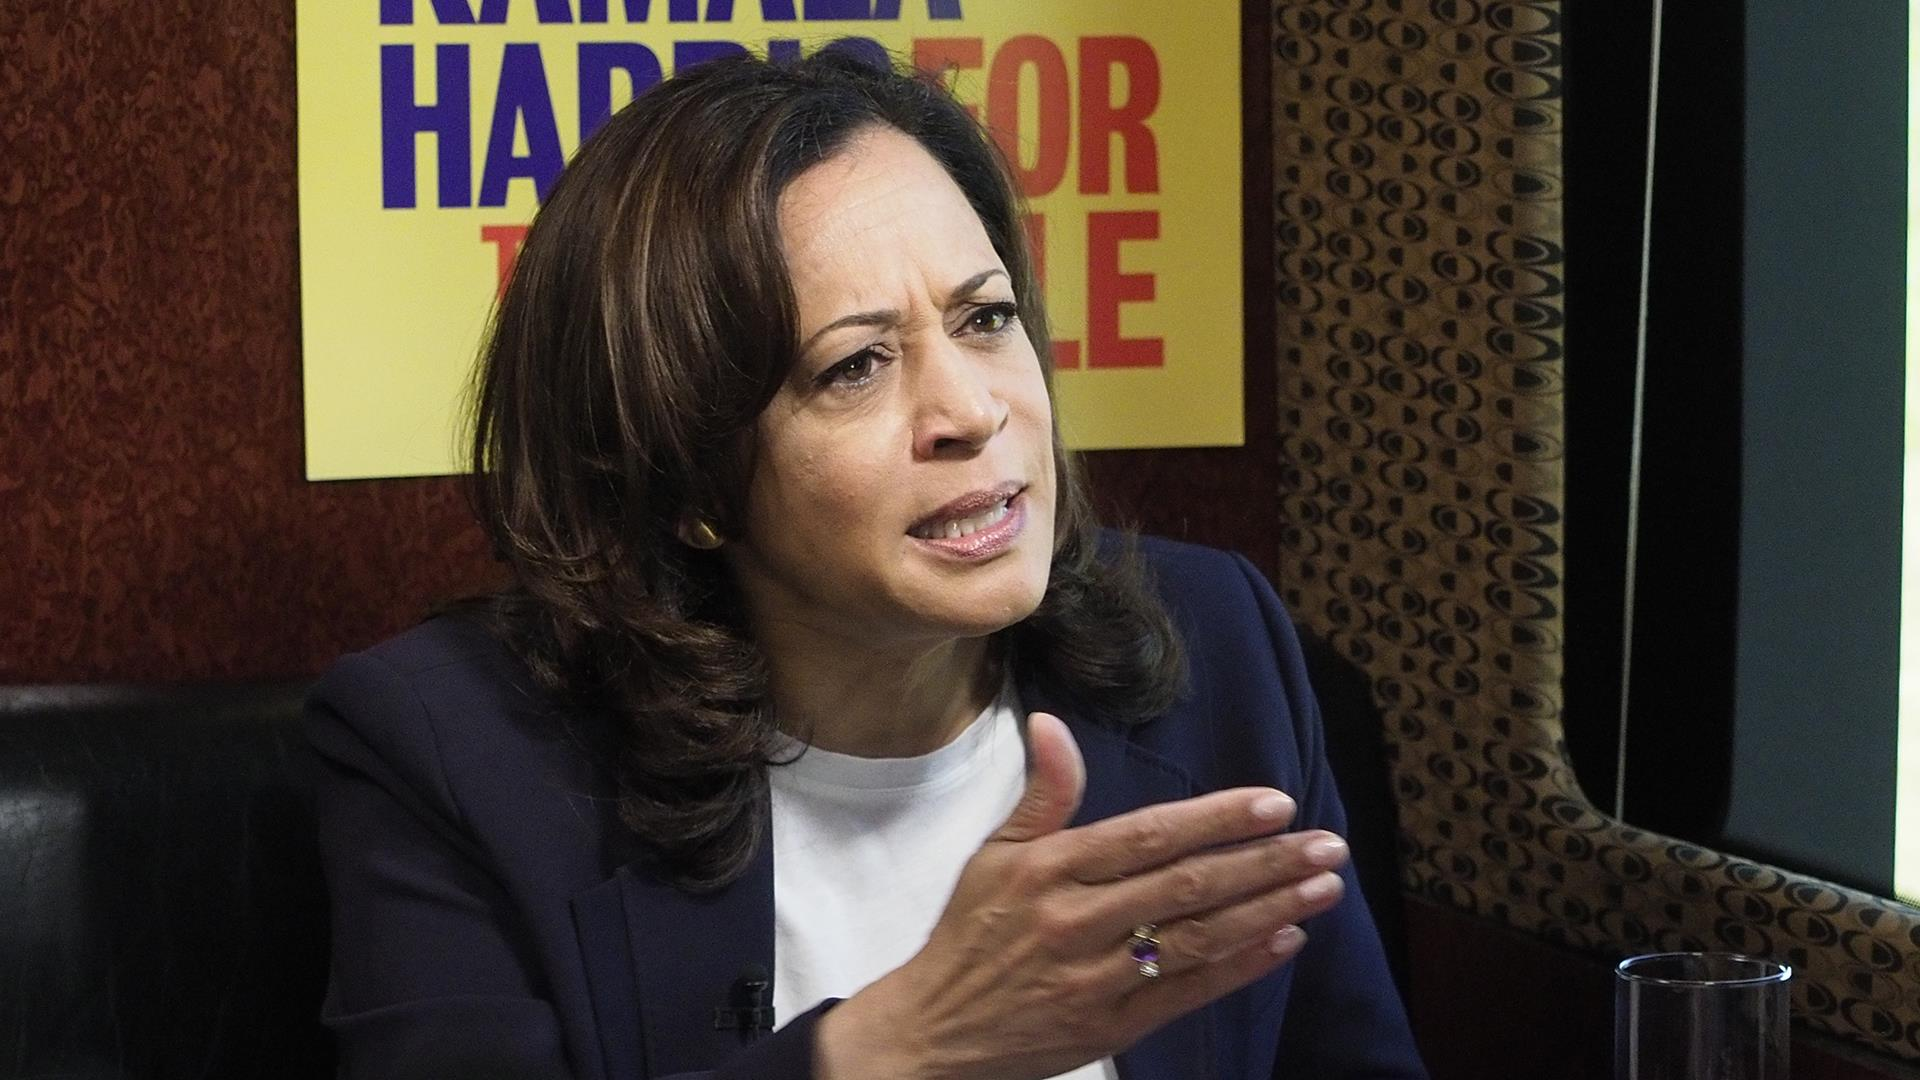 Harris: Wouldn't be 'authentic' for Trump to reassure Hispanics after El Paso